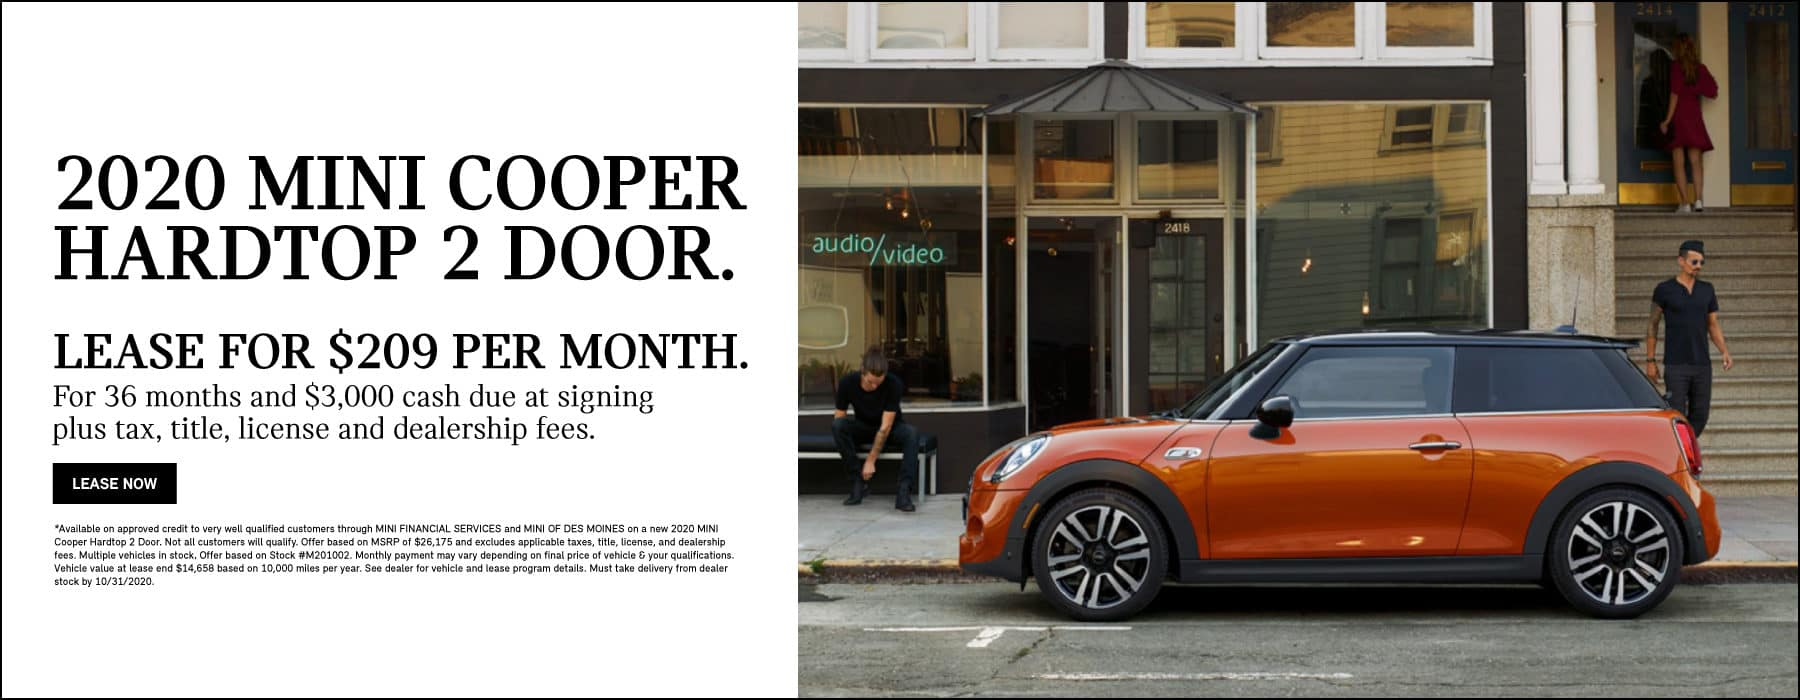 2020 MINI Cooper Hardtop 2 Door $209 per month 36 months 10,000 miles per year $3,000 cash due at signing plus tax, title, license and dealership fees